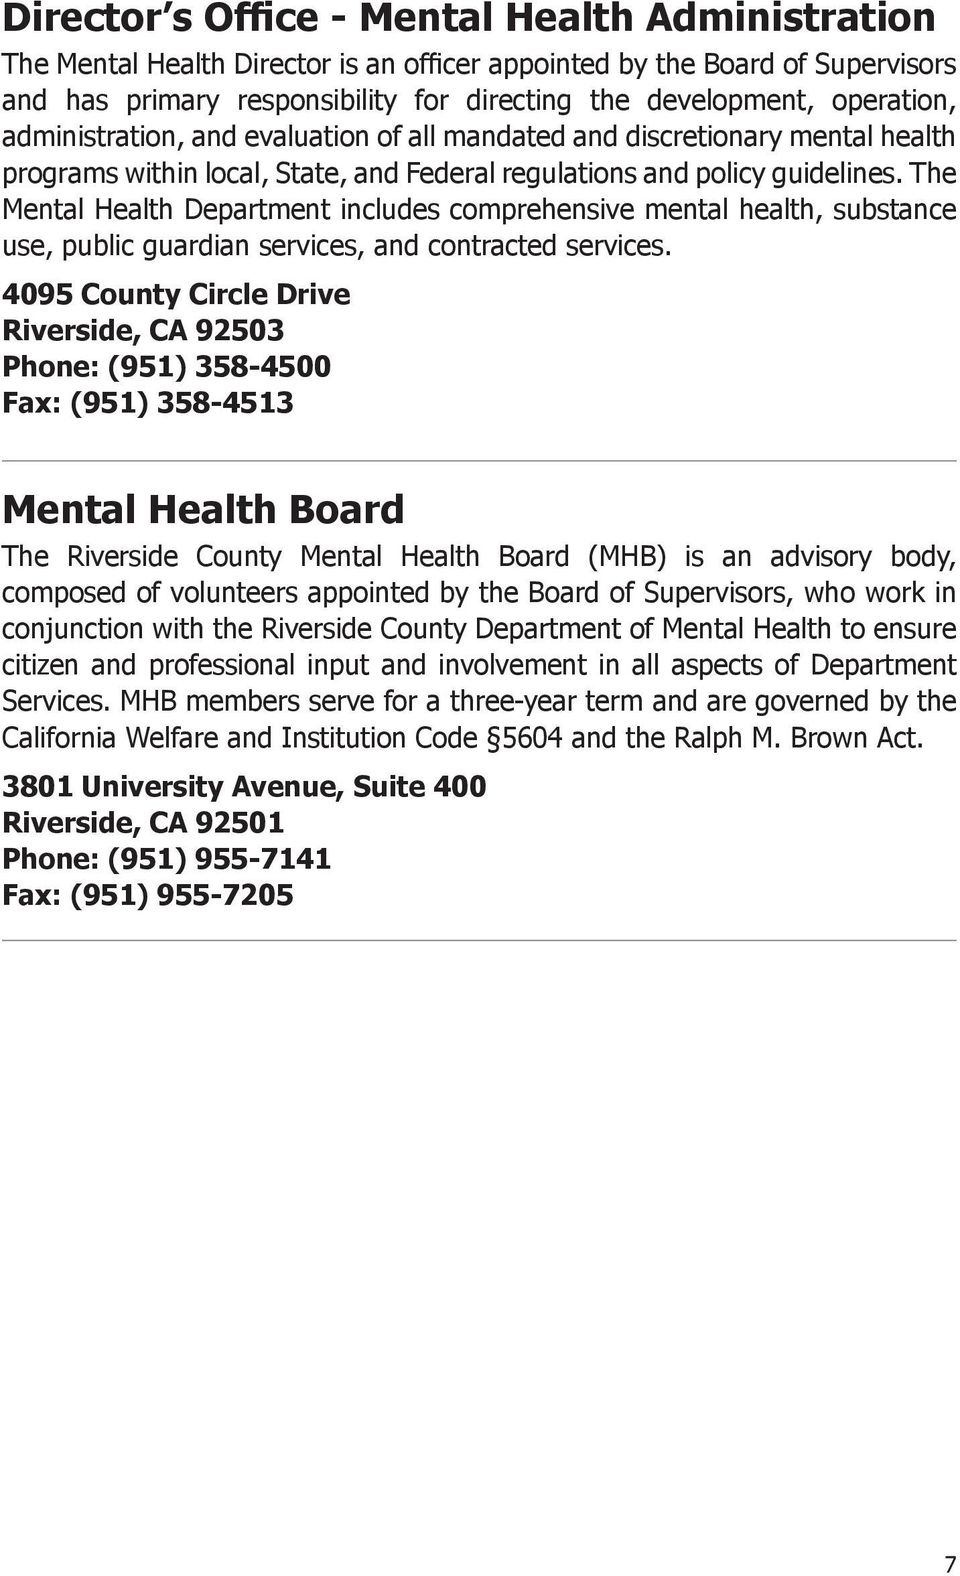 The Mental Health Department includes comprehensive mental health, substance use, public guardian services, and contracted services.